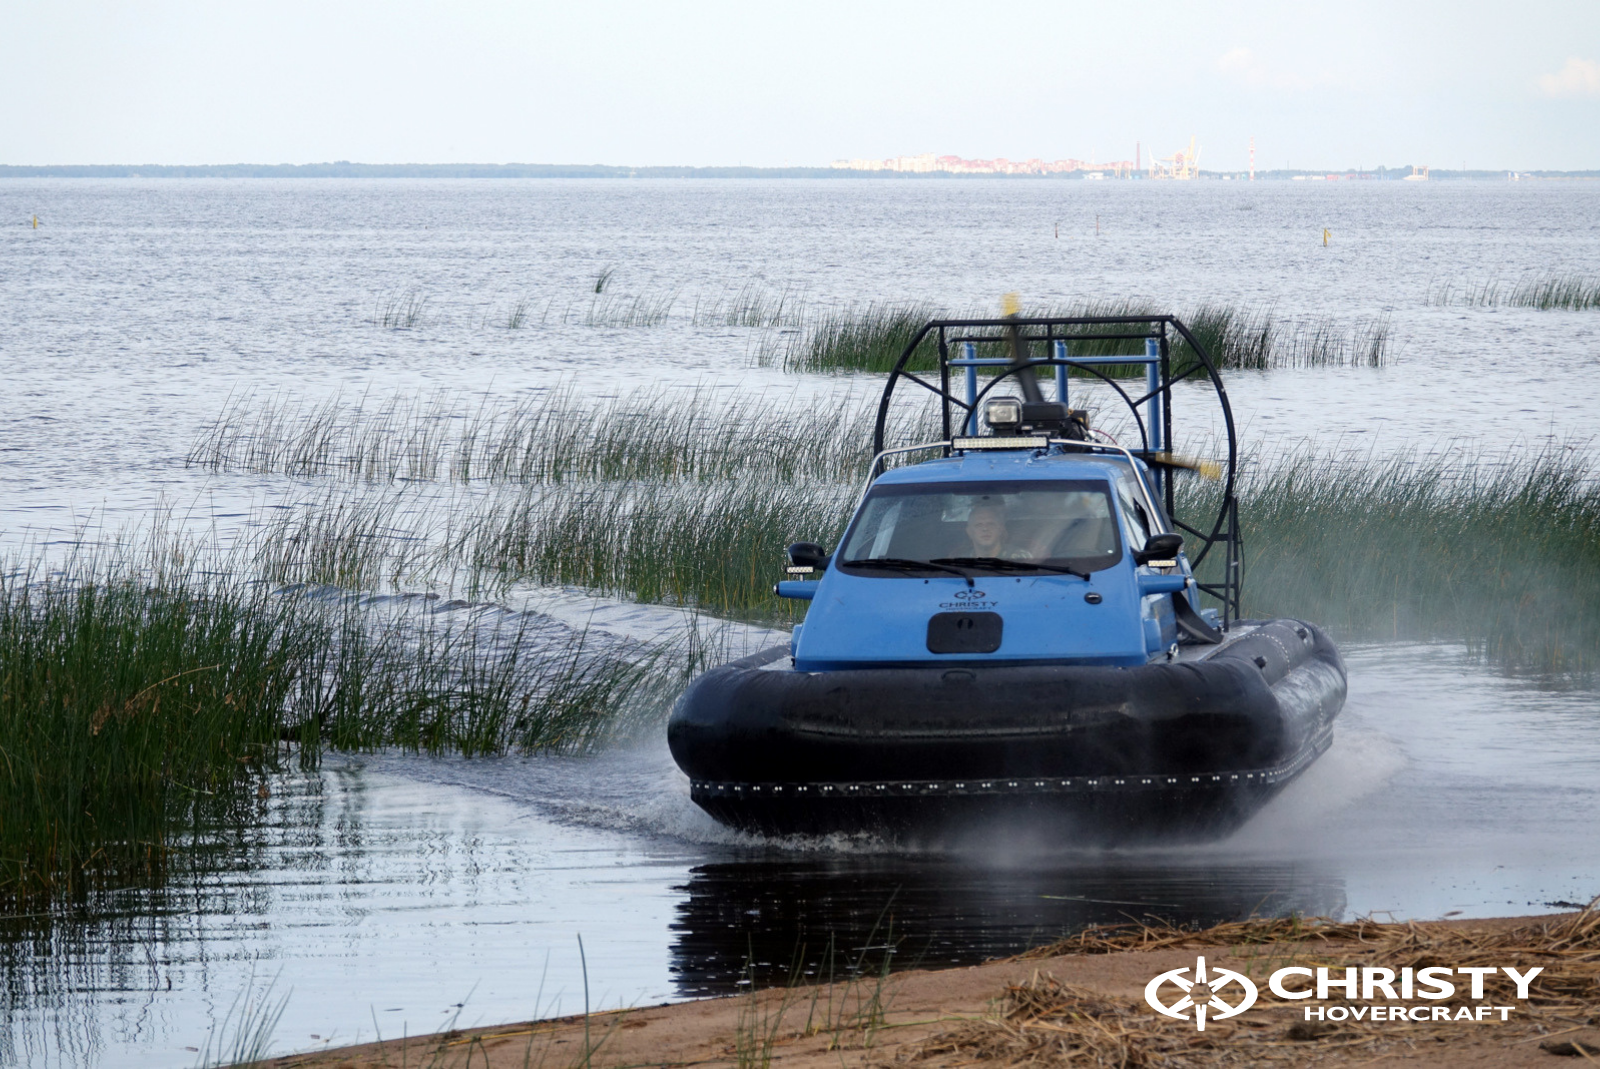 Test drive of the Christy 463 PC hovercraft in the water area of the Gulf of Finland